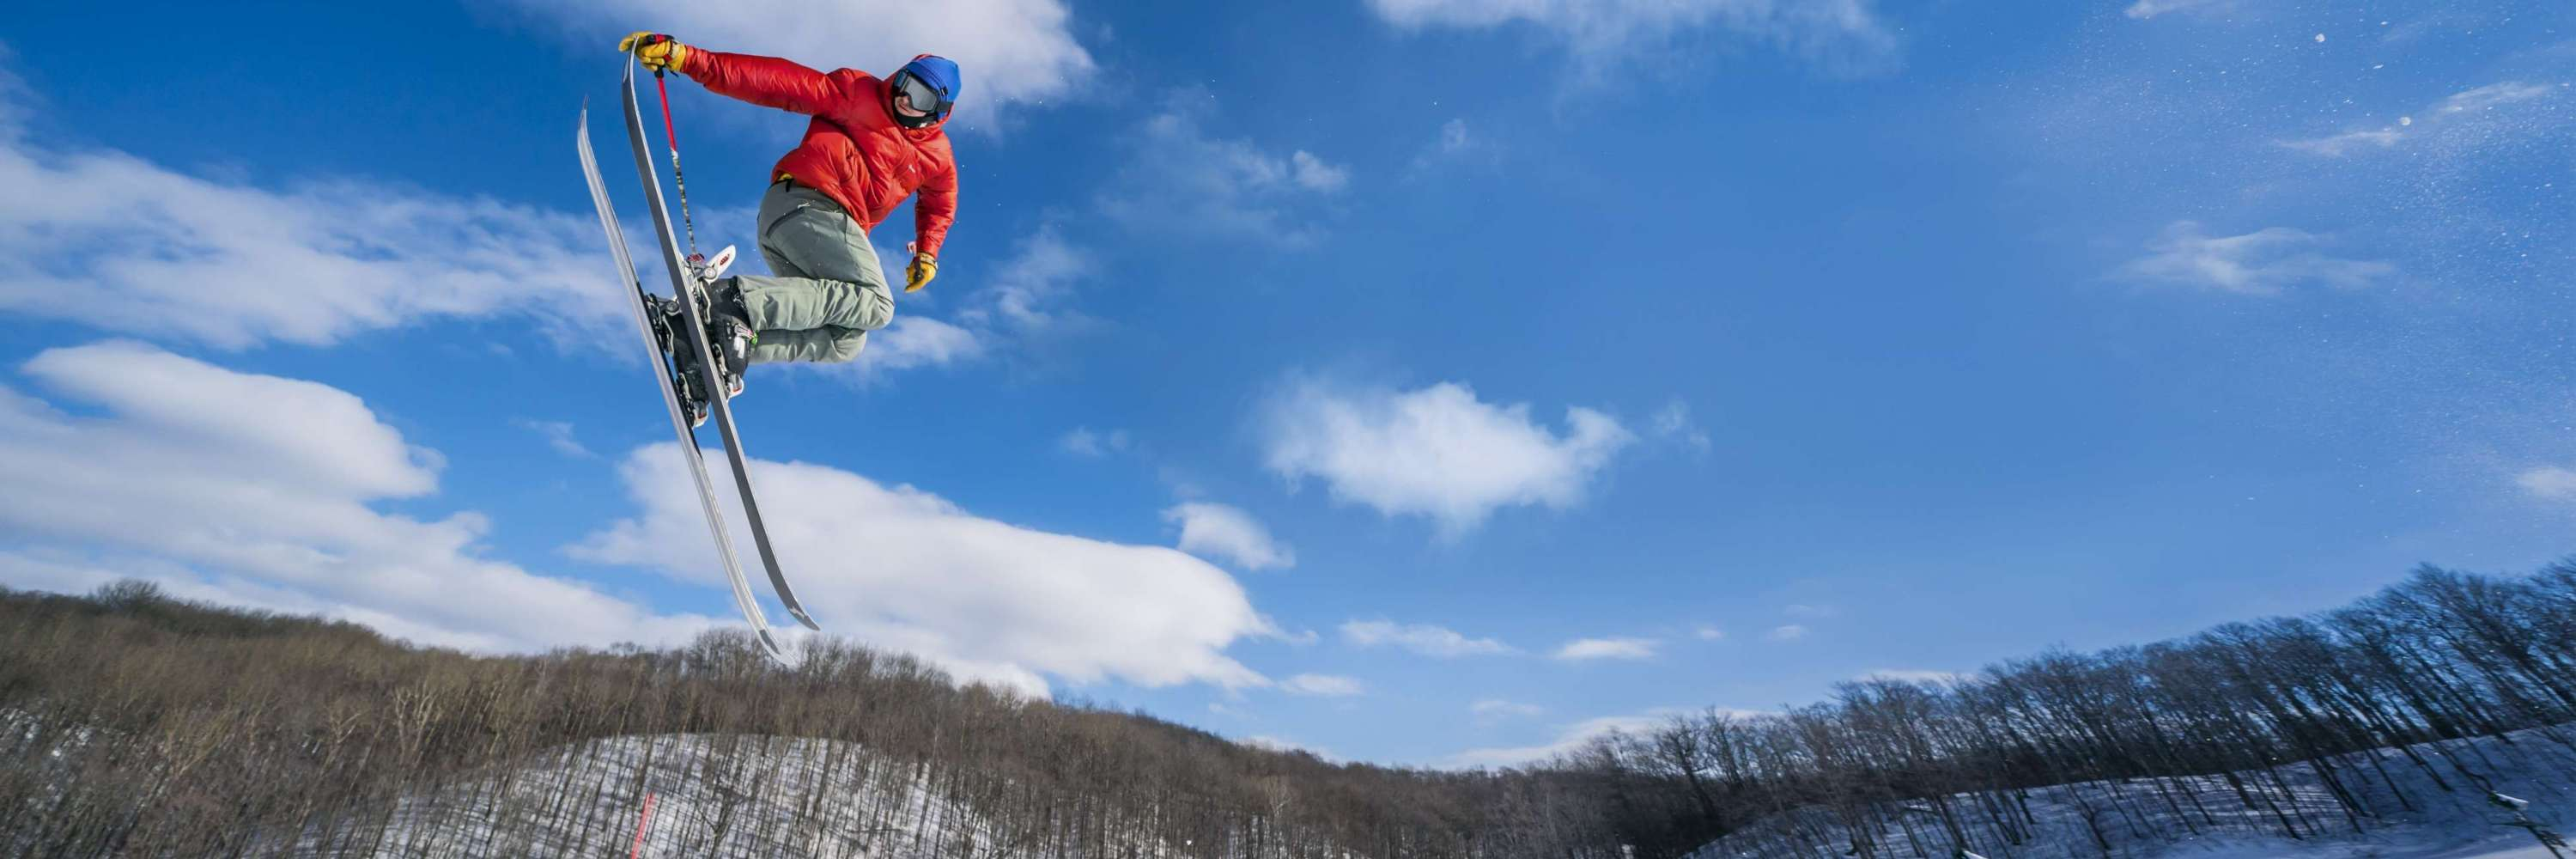 Skier in air on snowy mountain